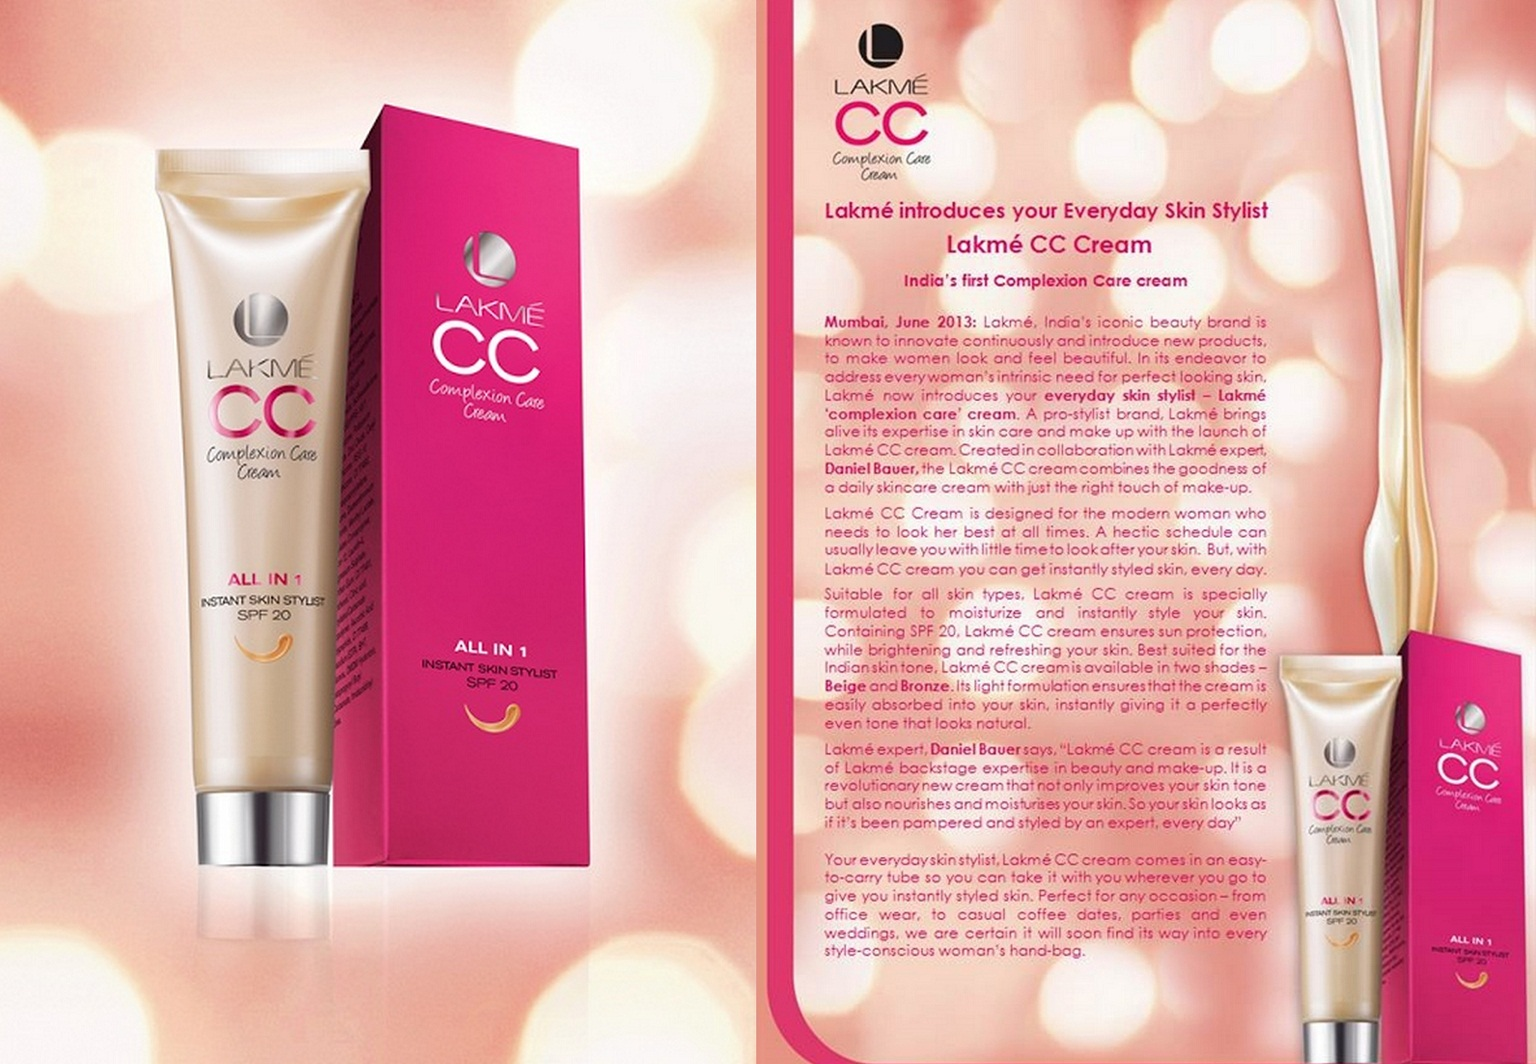 First CC Cream In India by Lakme - Lakme Complexion Care